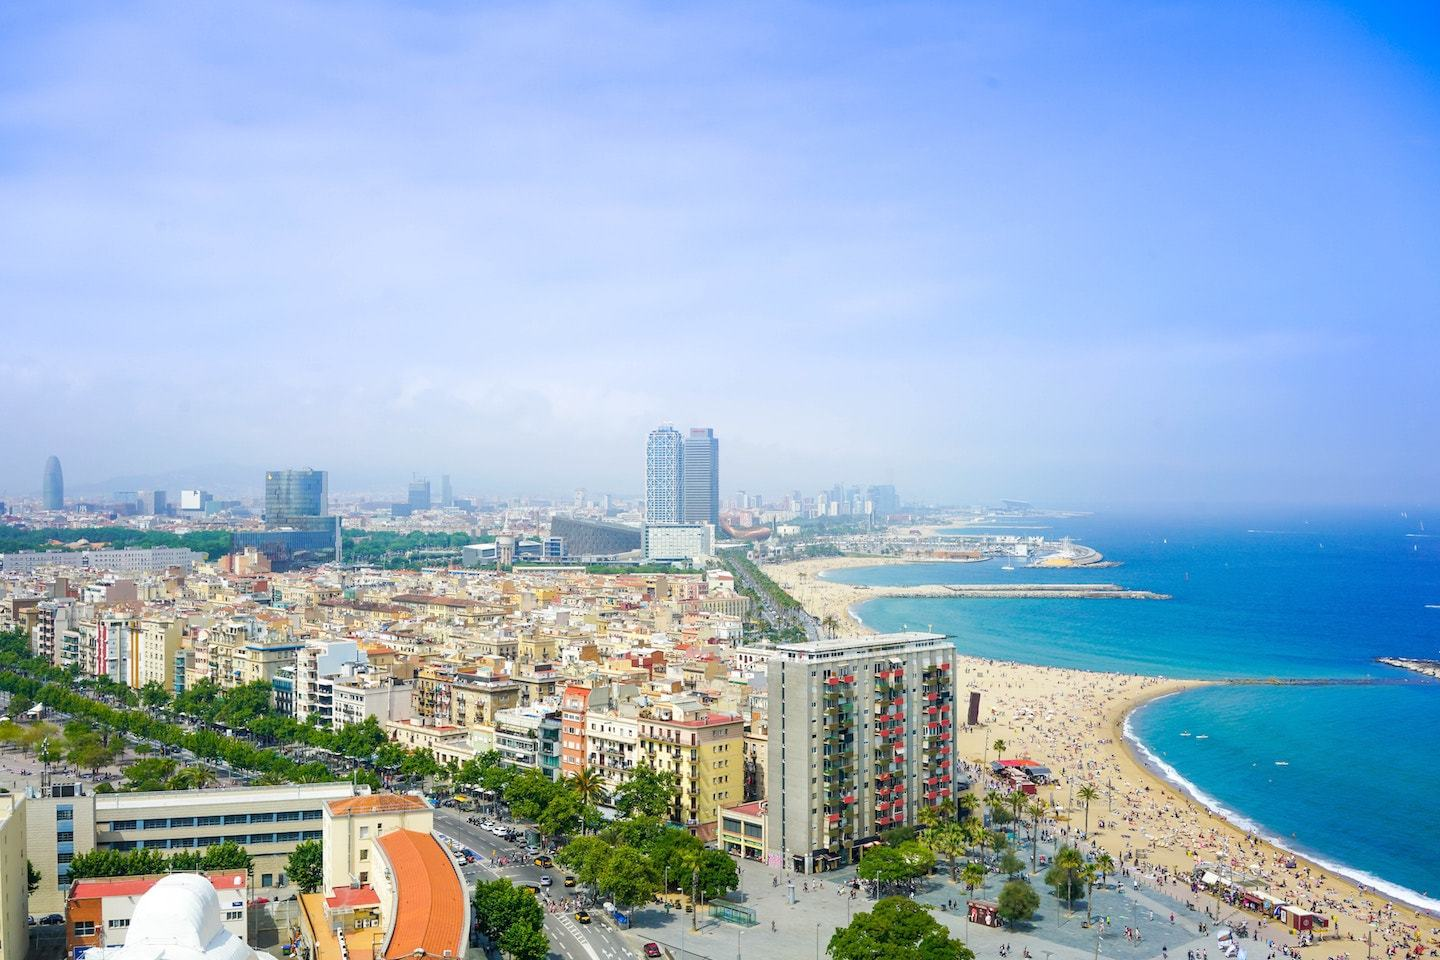 aerial view of city with beach and ocean in spain